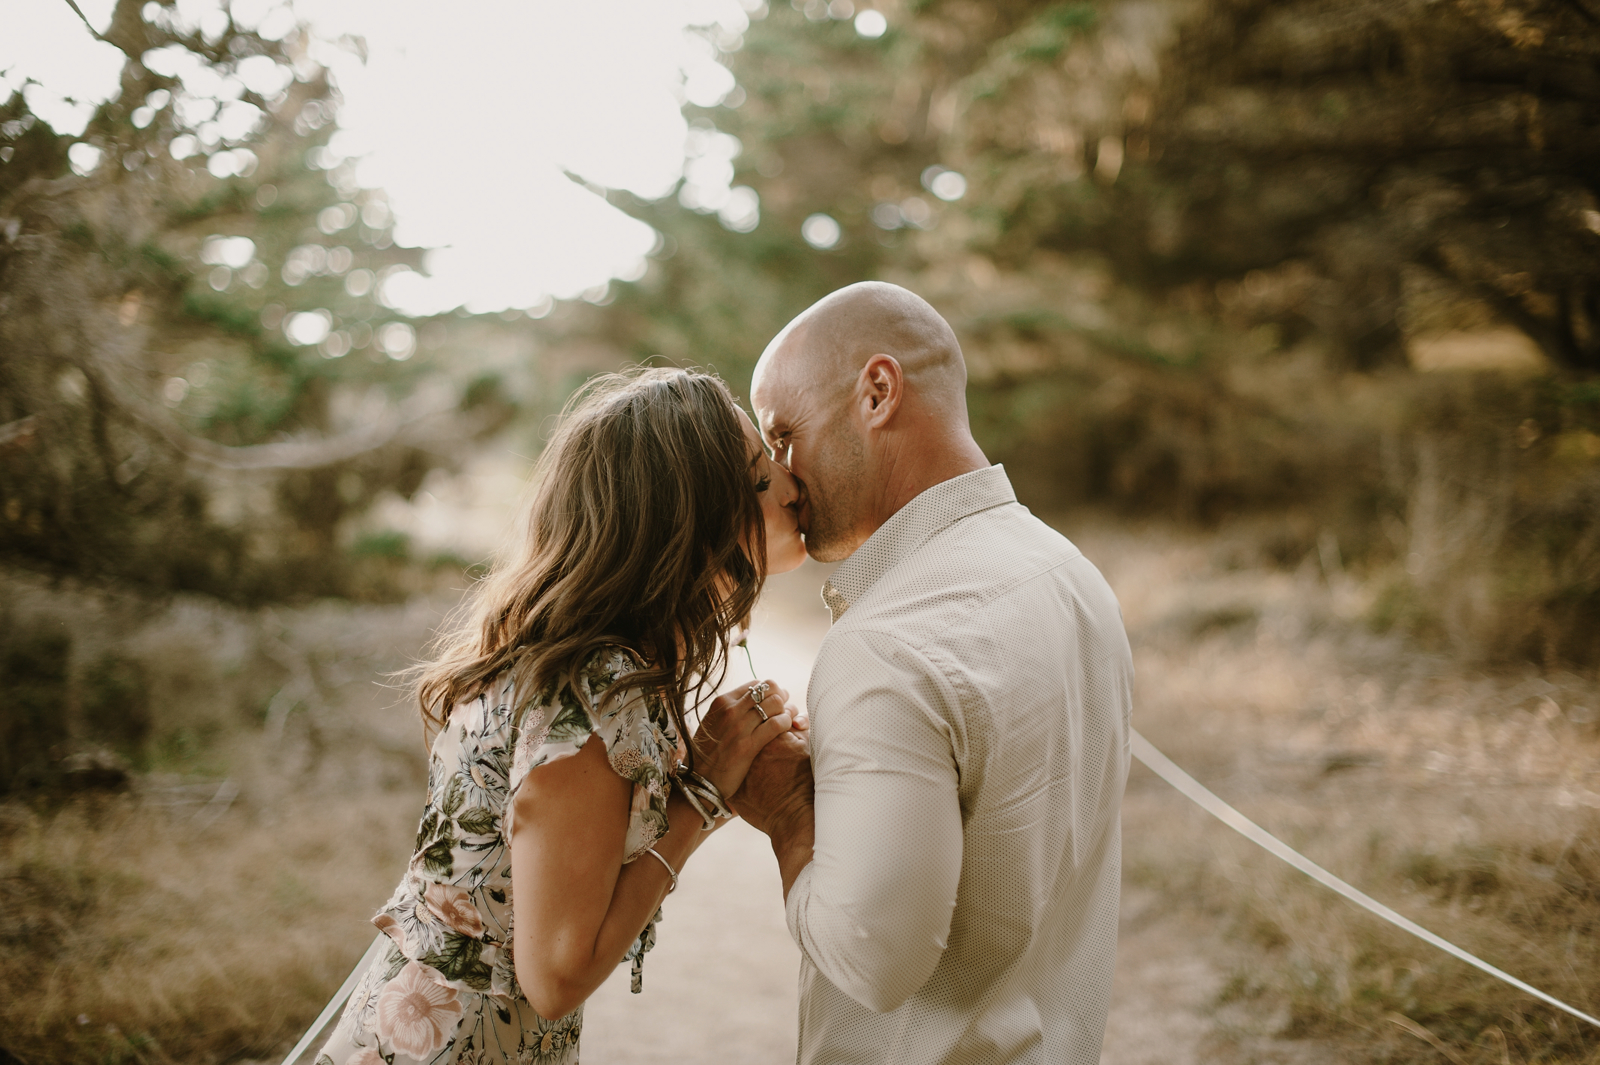 Carmel-By-The-Sea Engagement Photographer